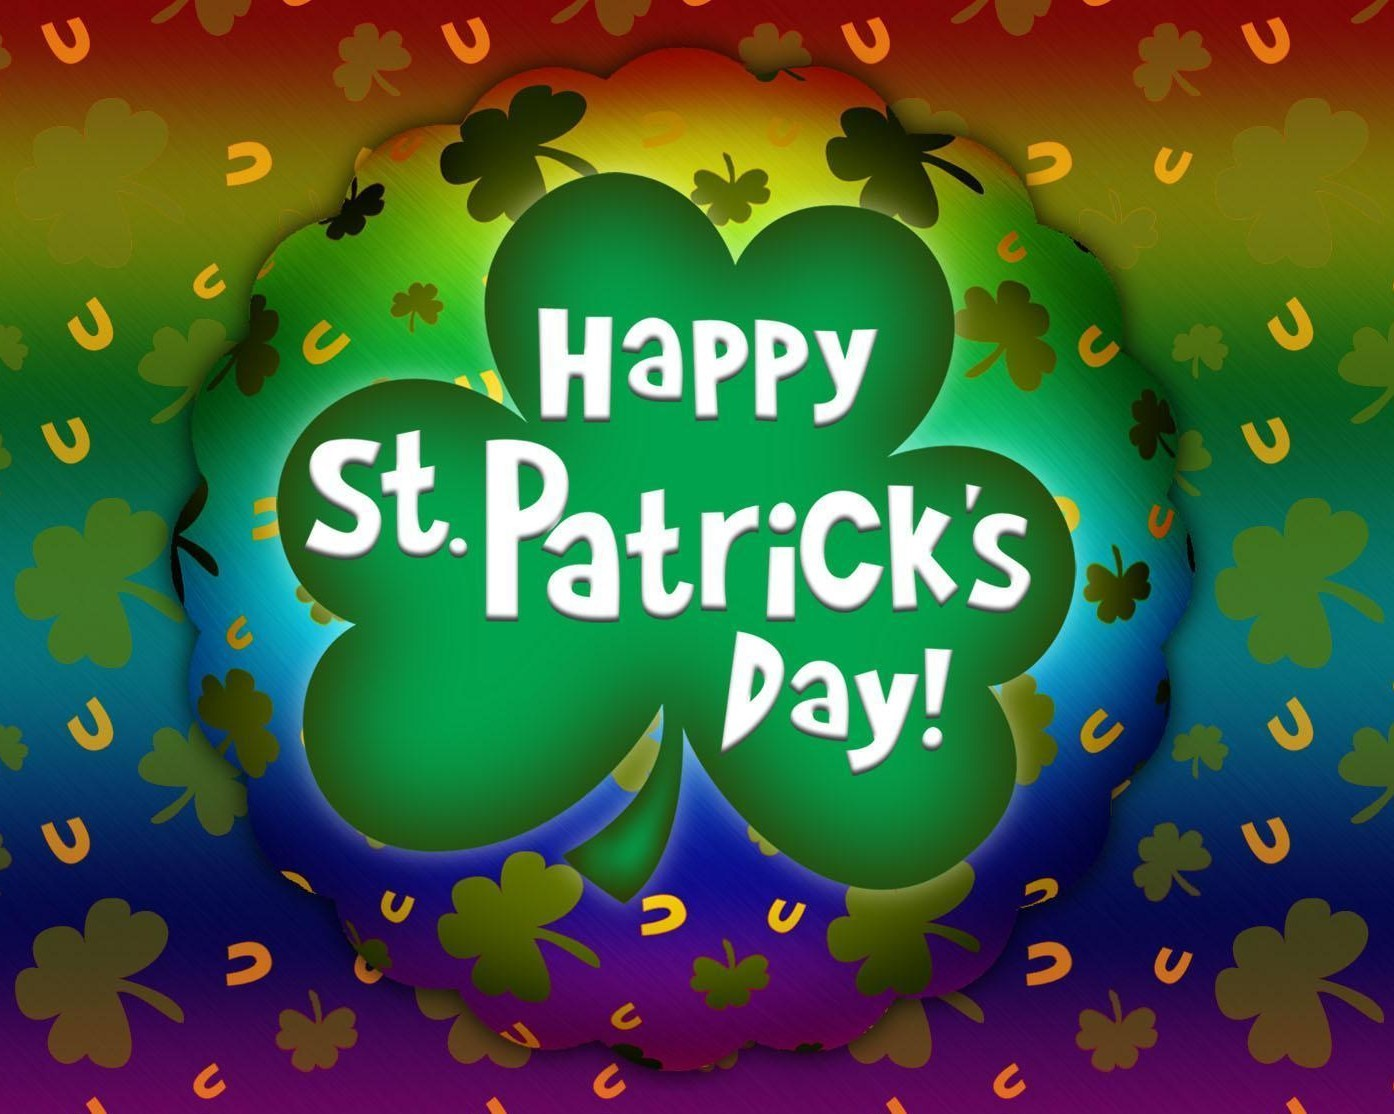 Happy St Patrick's Day 2018 Quotes Wishes Messages Sayings